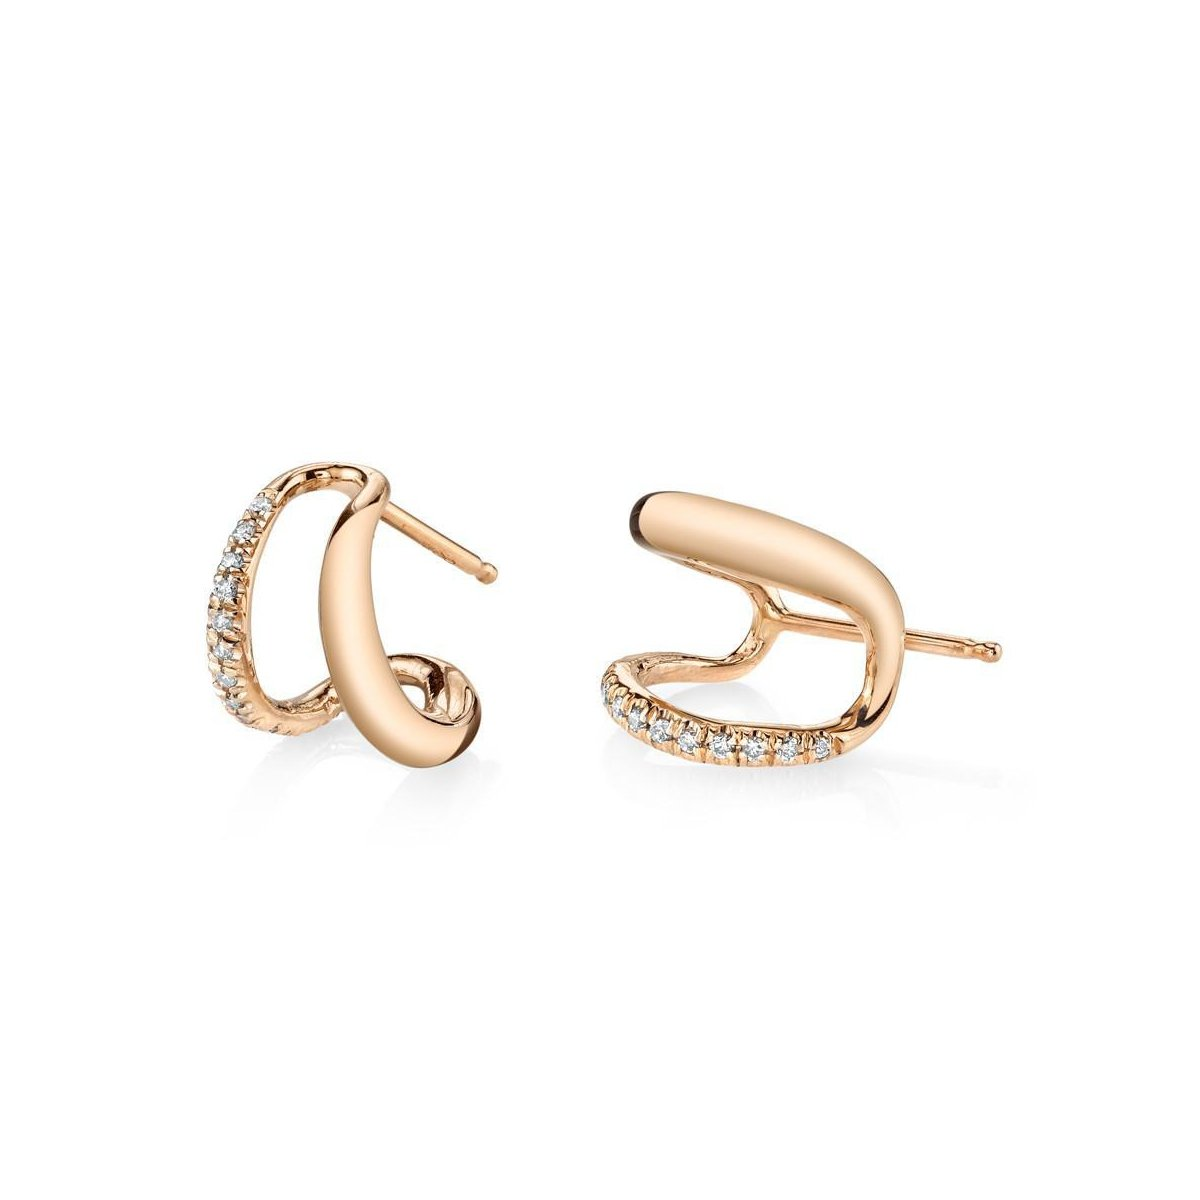 Gabriela Artigas Twin Tusk Earrings with White Pavé (Pair)